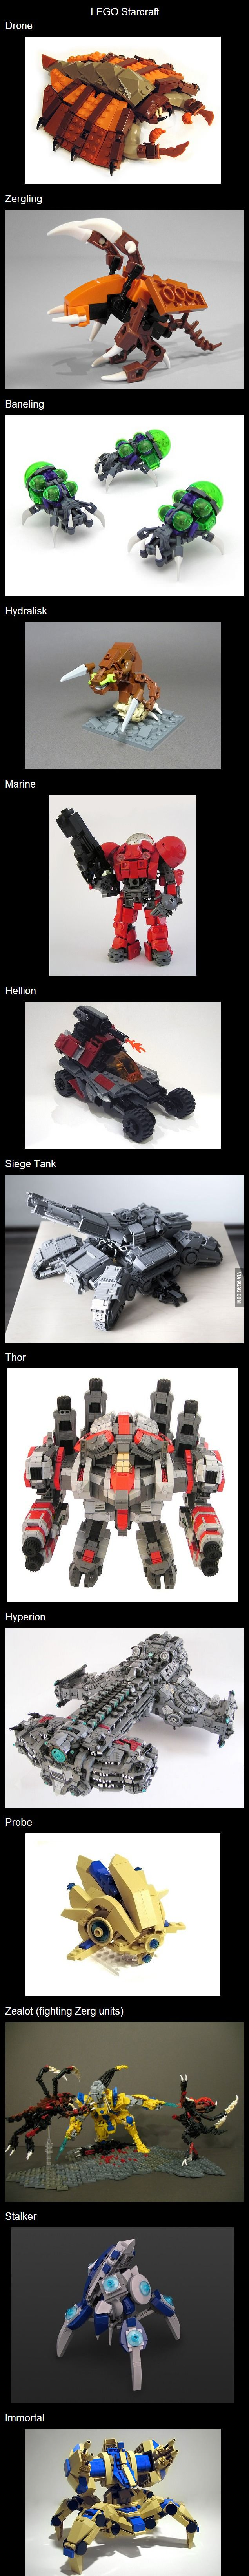 LEGO Starcraft Wishlist